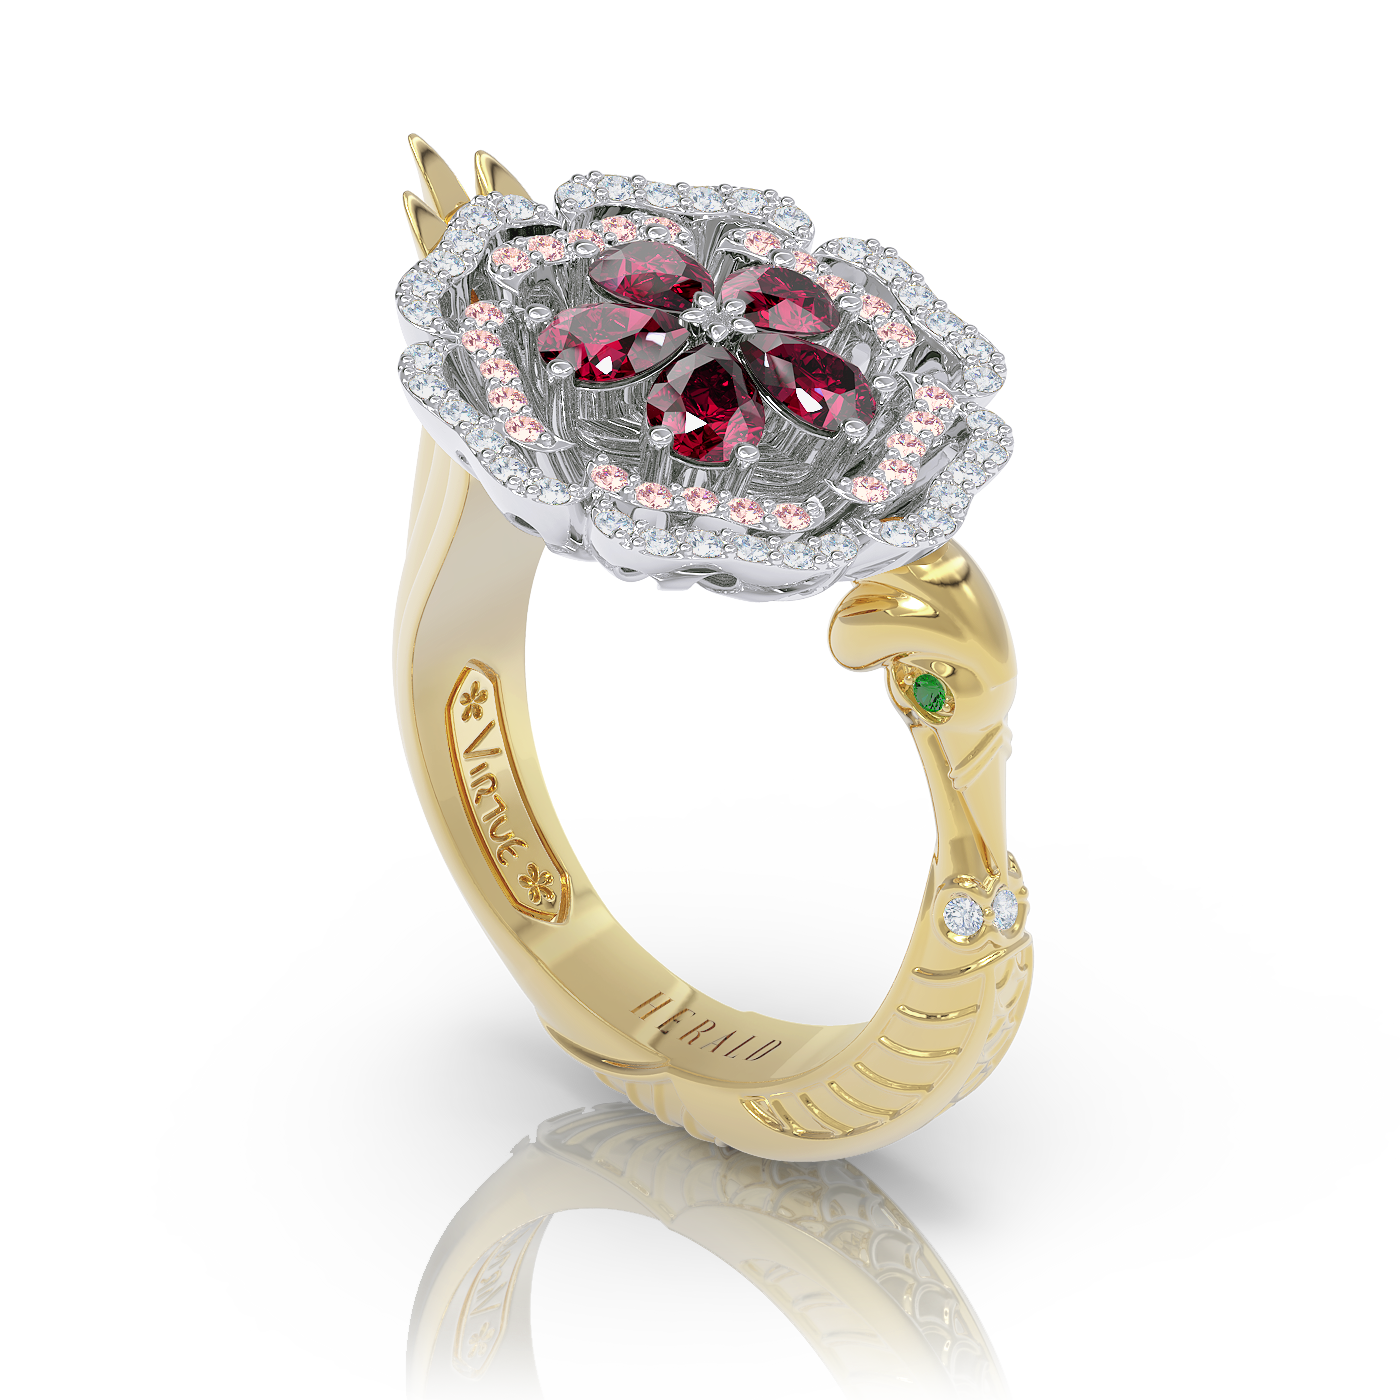 Diamond sapphire and ruby pinky ring by Alice Herald